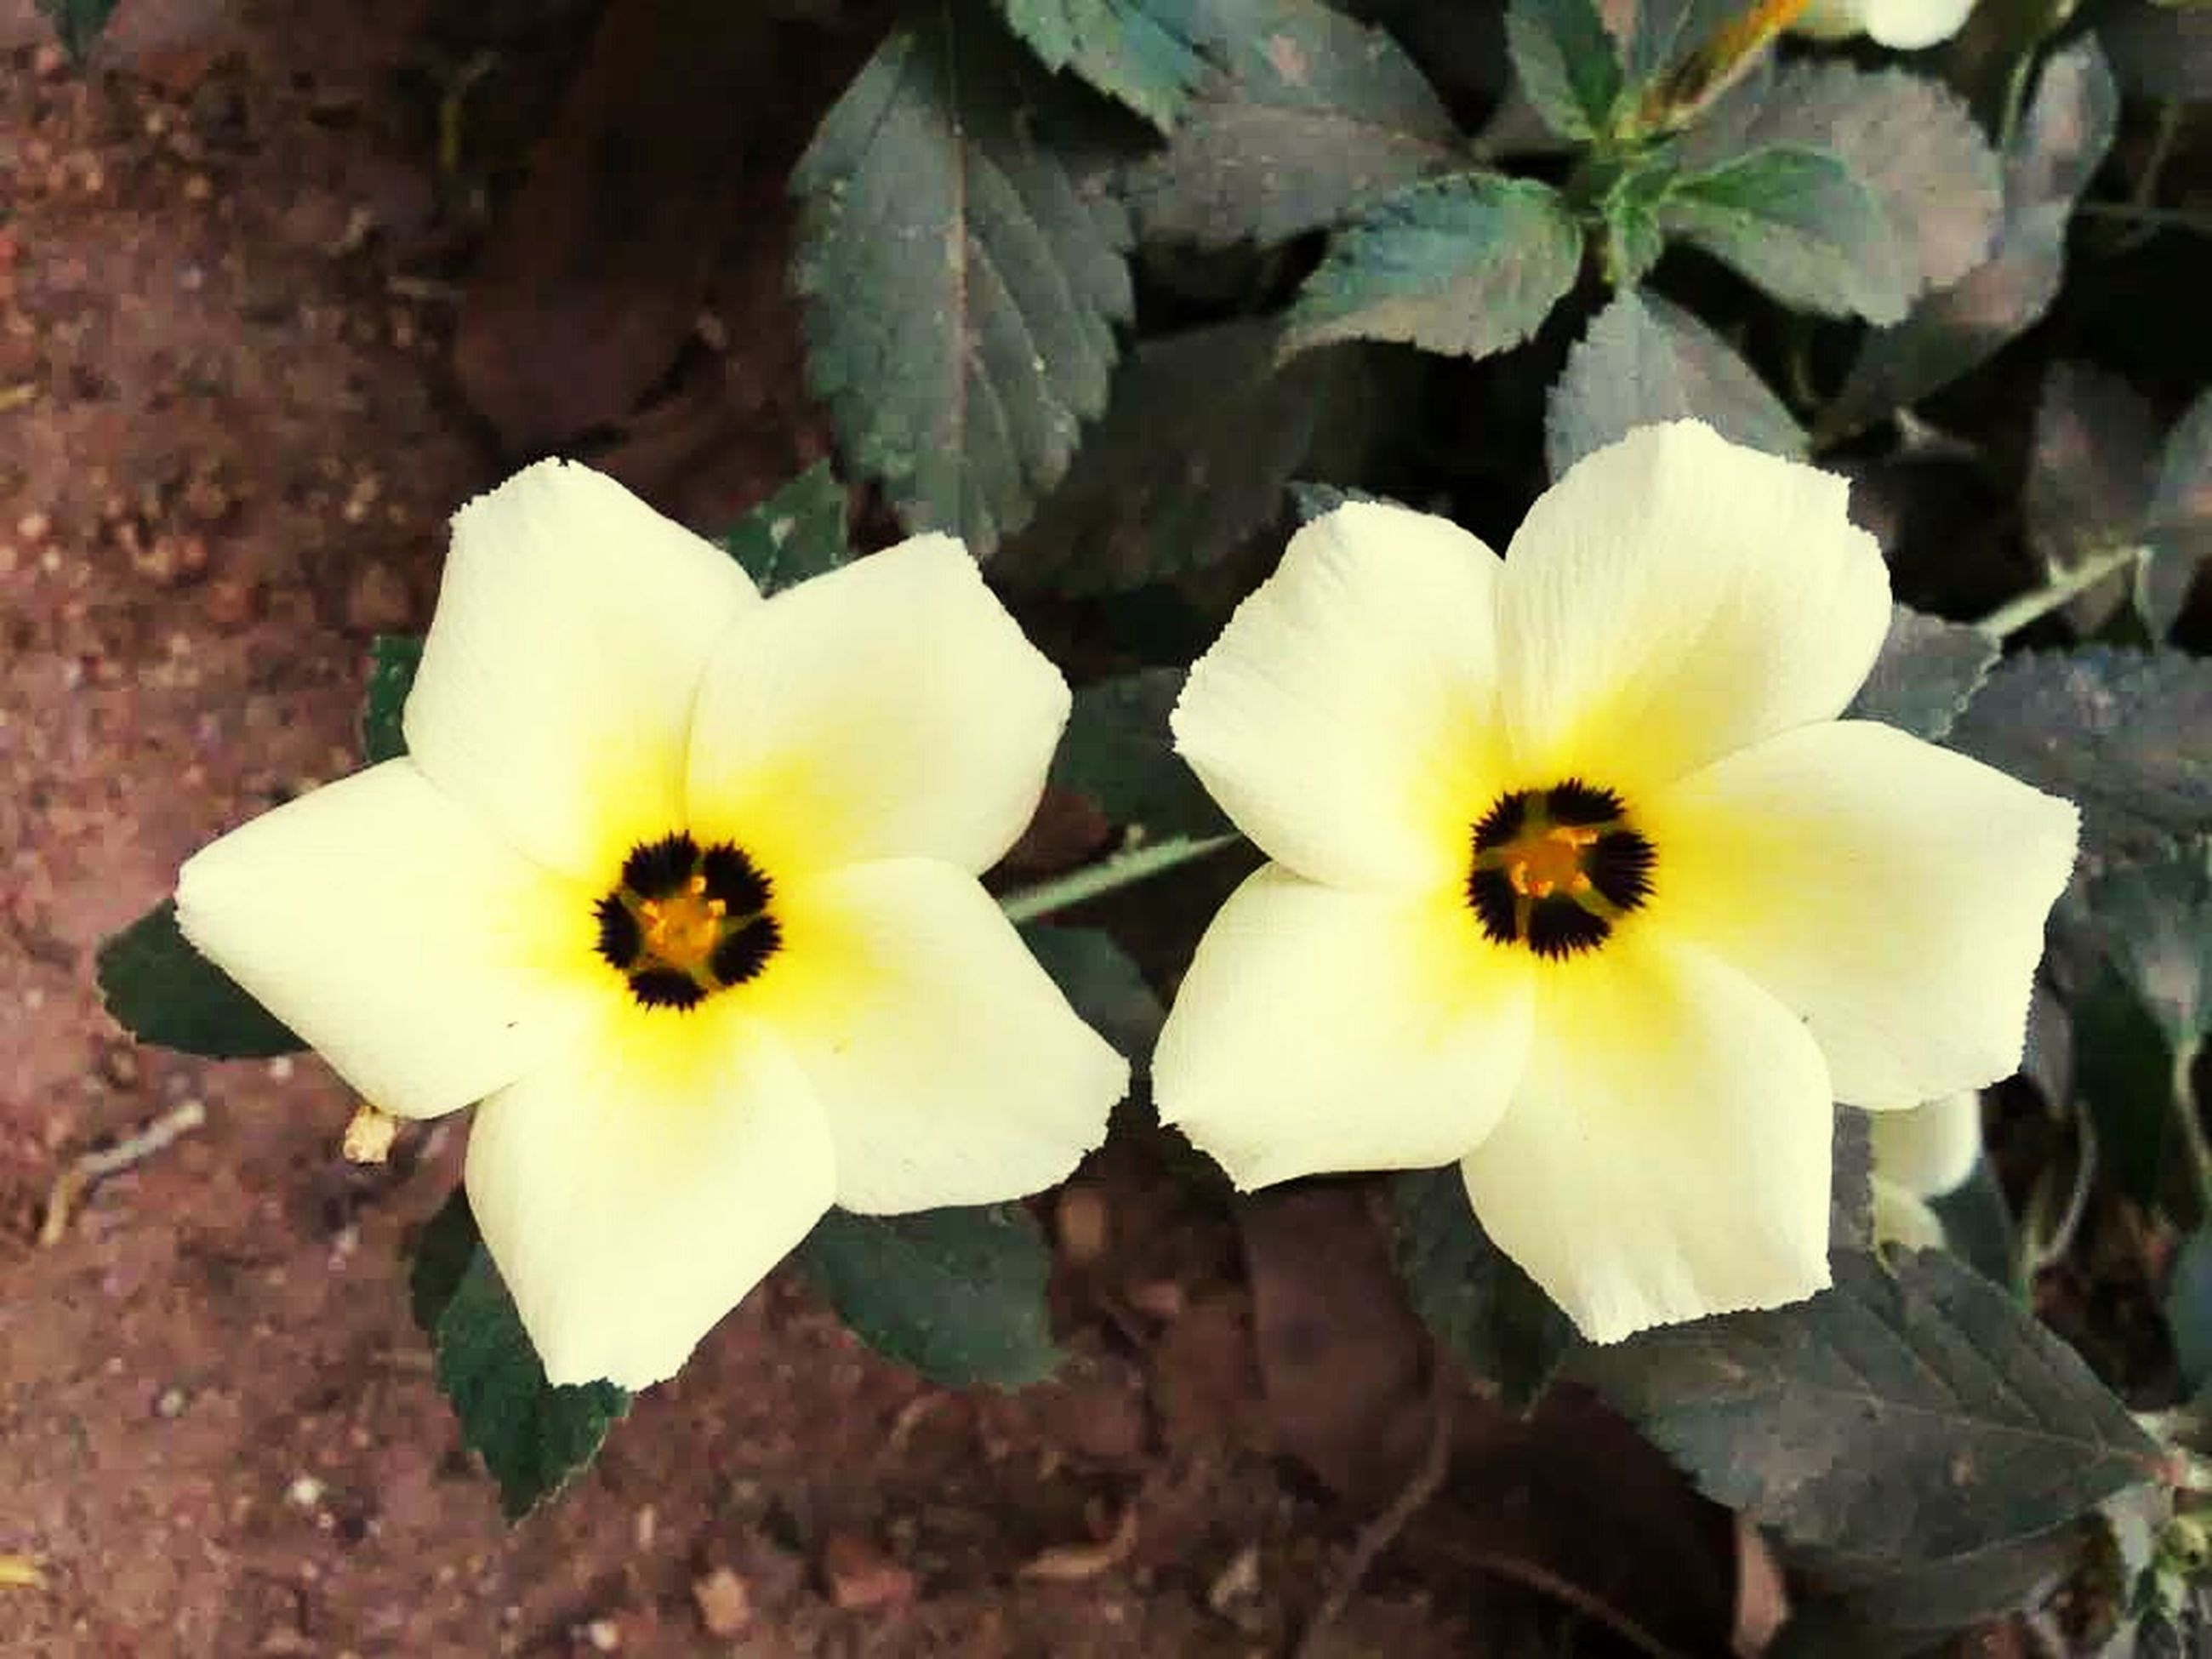 flower, petal, freshness, fragility, flower head, yellow, growth, beauty in nature, high angle view, blooming, nature, pollen, close-up, plant, white color, leaf, in bloom, focus on foreground, day, blossom